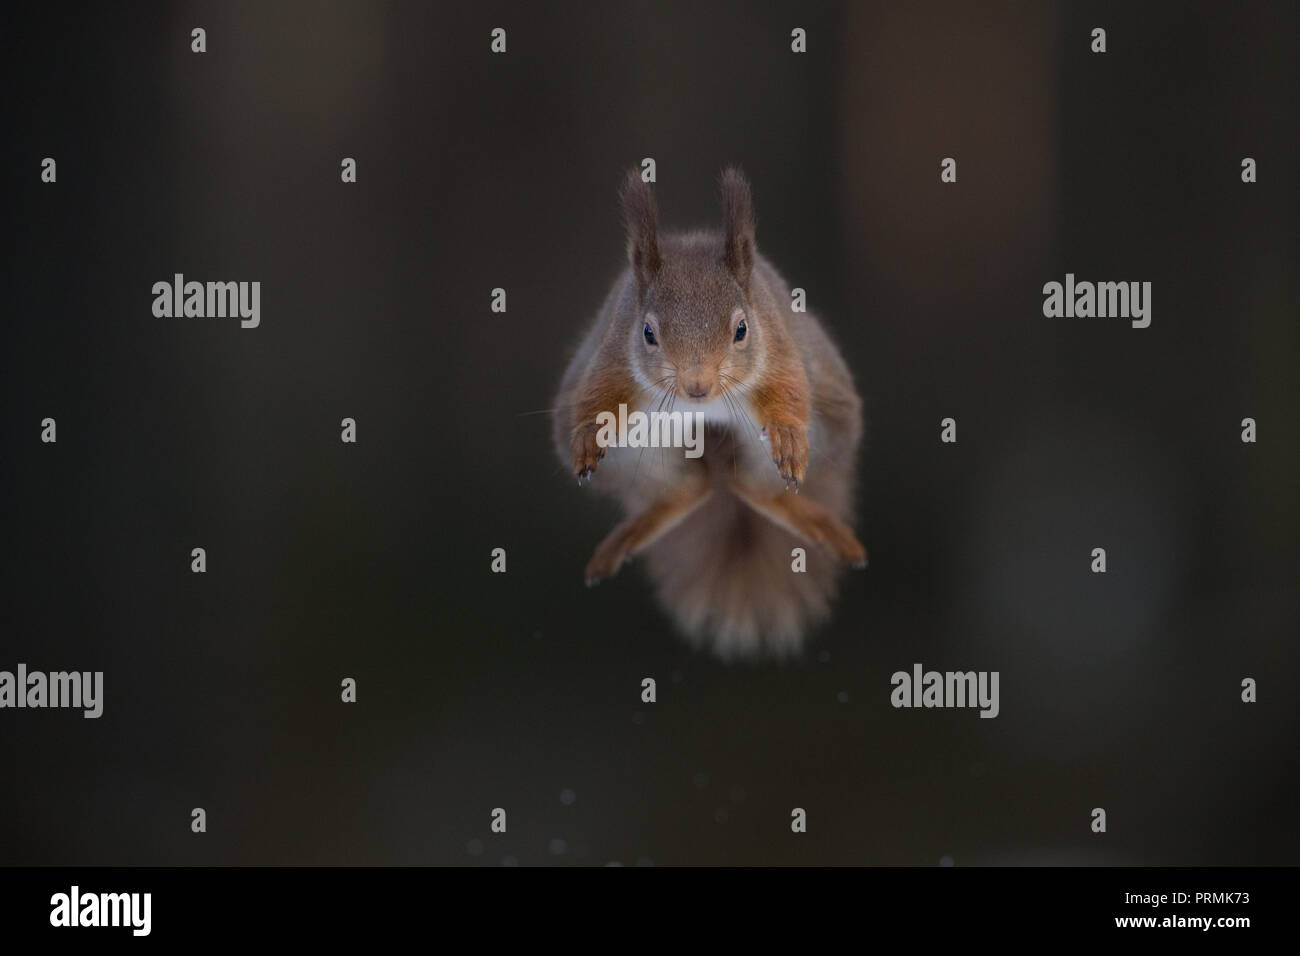 A red squirrel (Sciurus vulgaris) leaping towards the camera, in a woodlands in the Scottish Highlands. - Stock Image